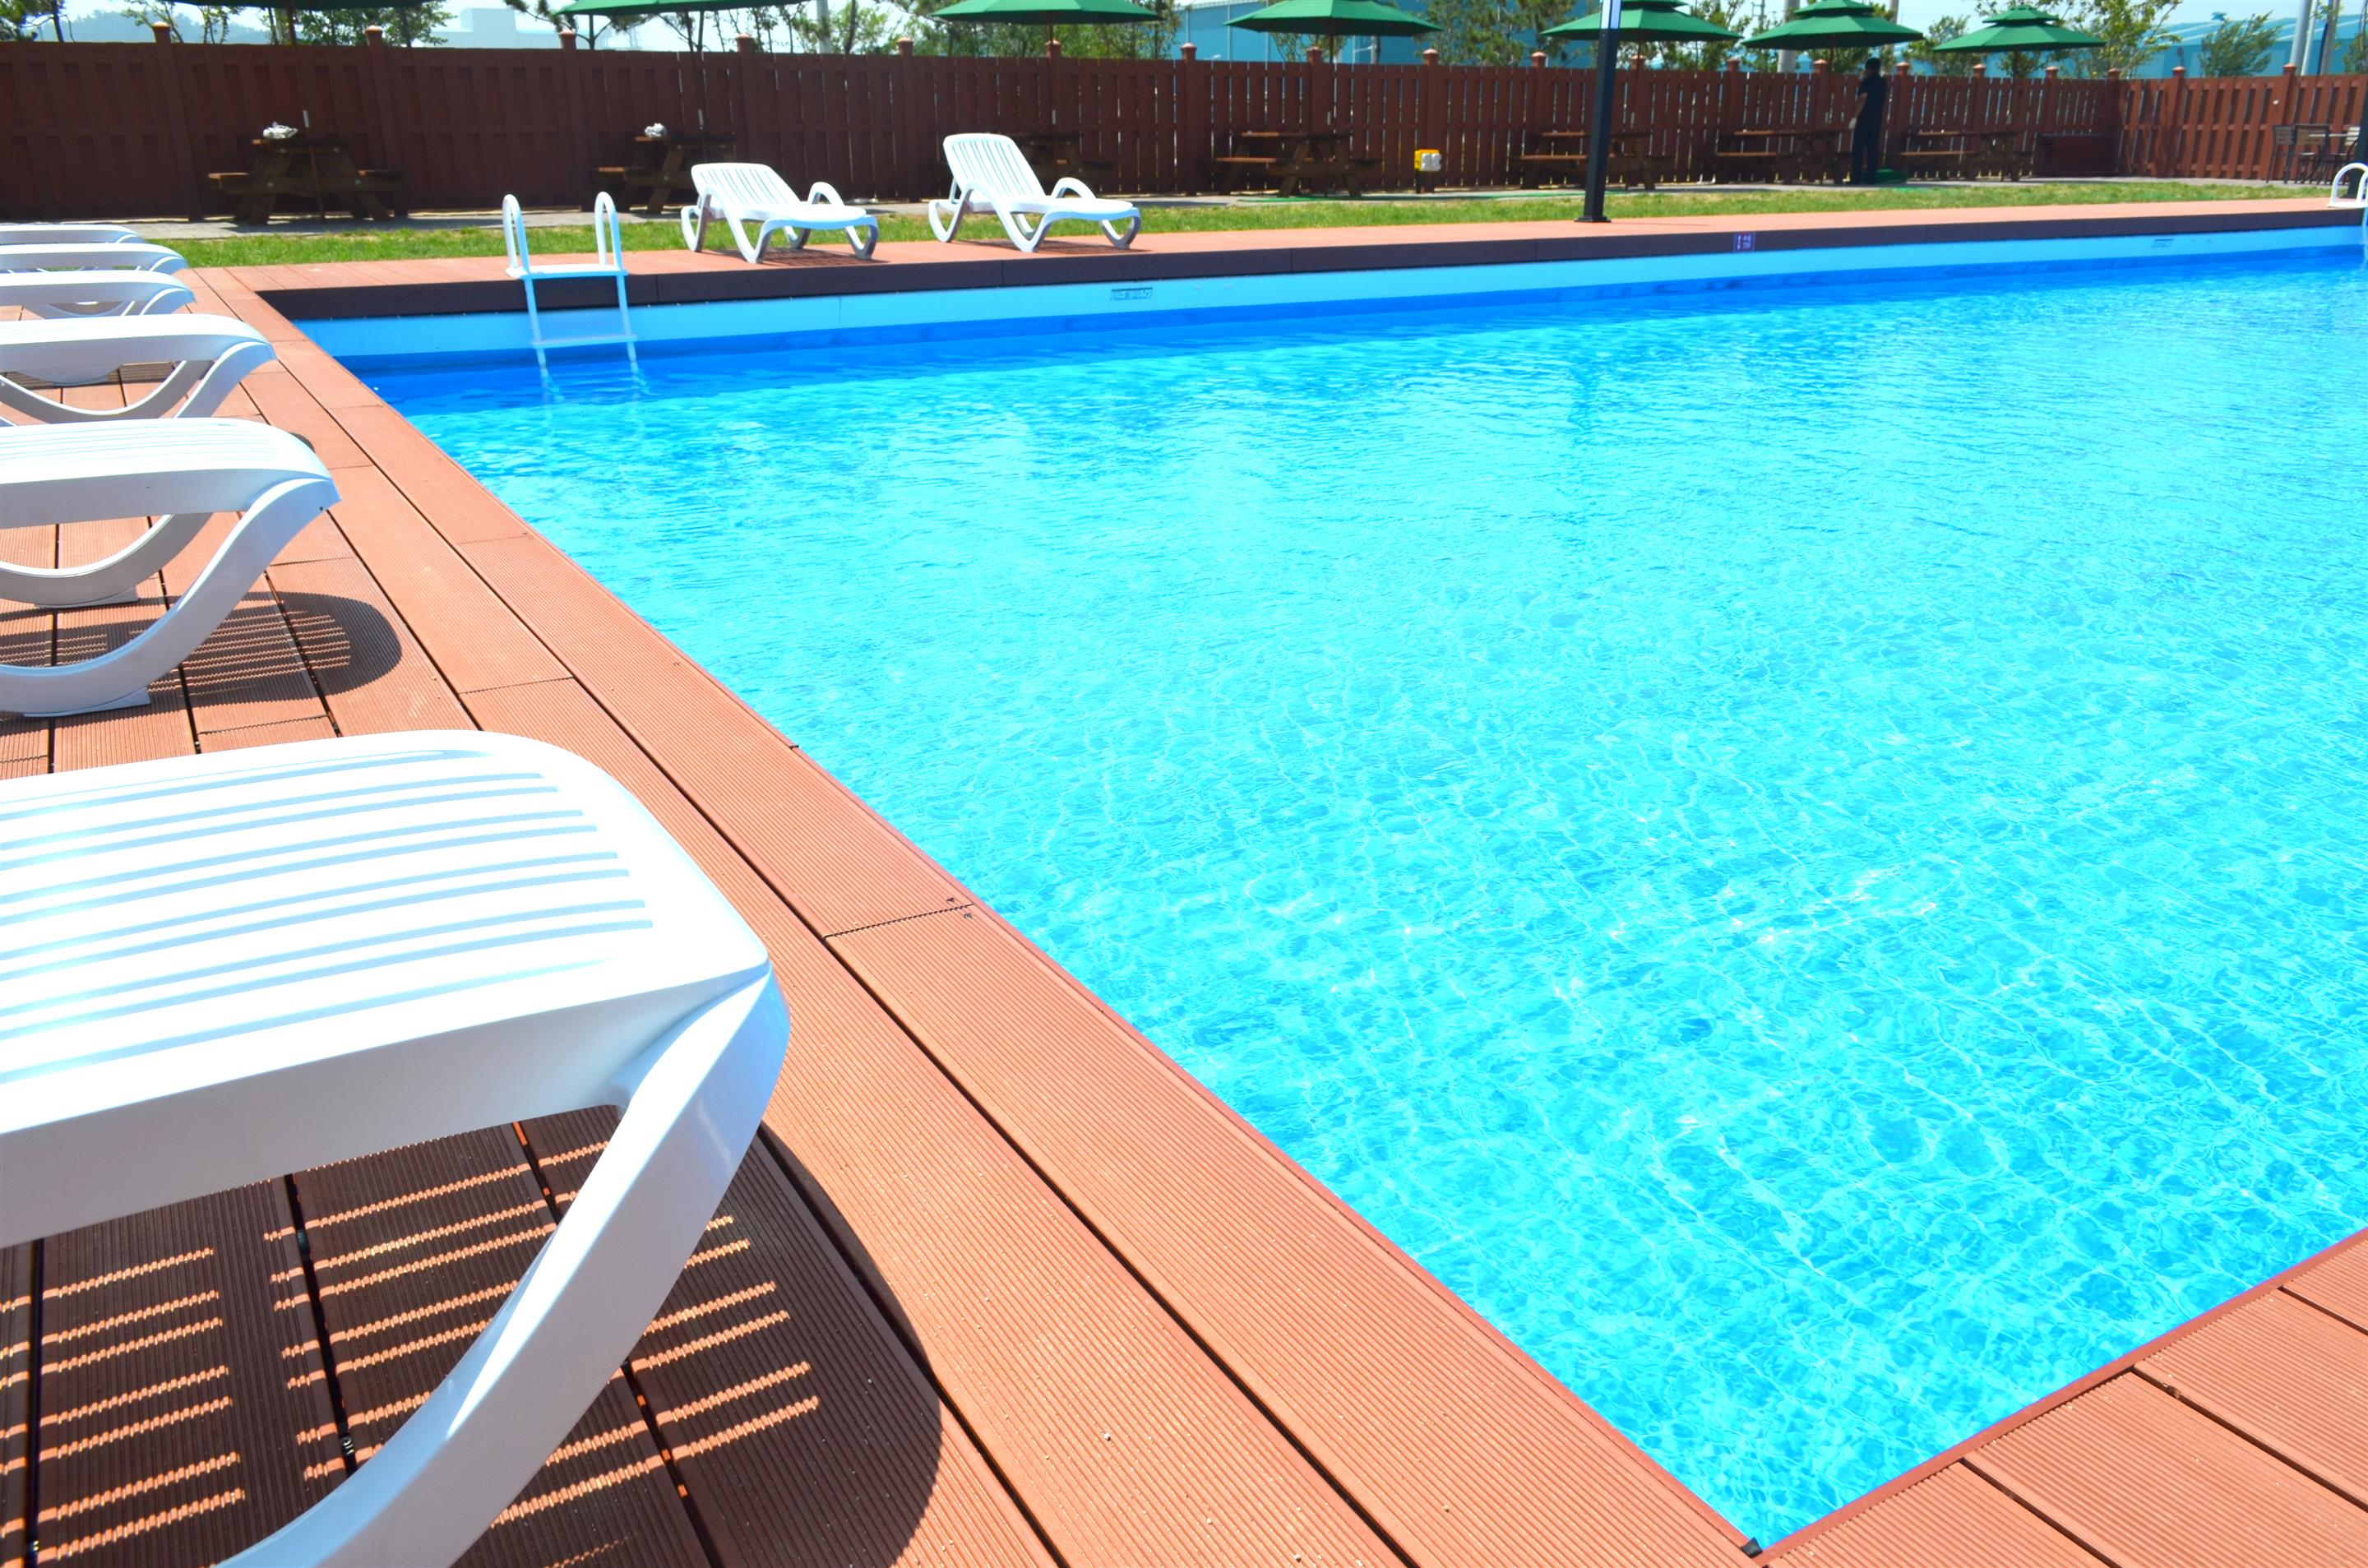 Pool : Outdoor Swimming Pool 15 of 152